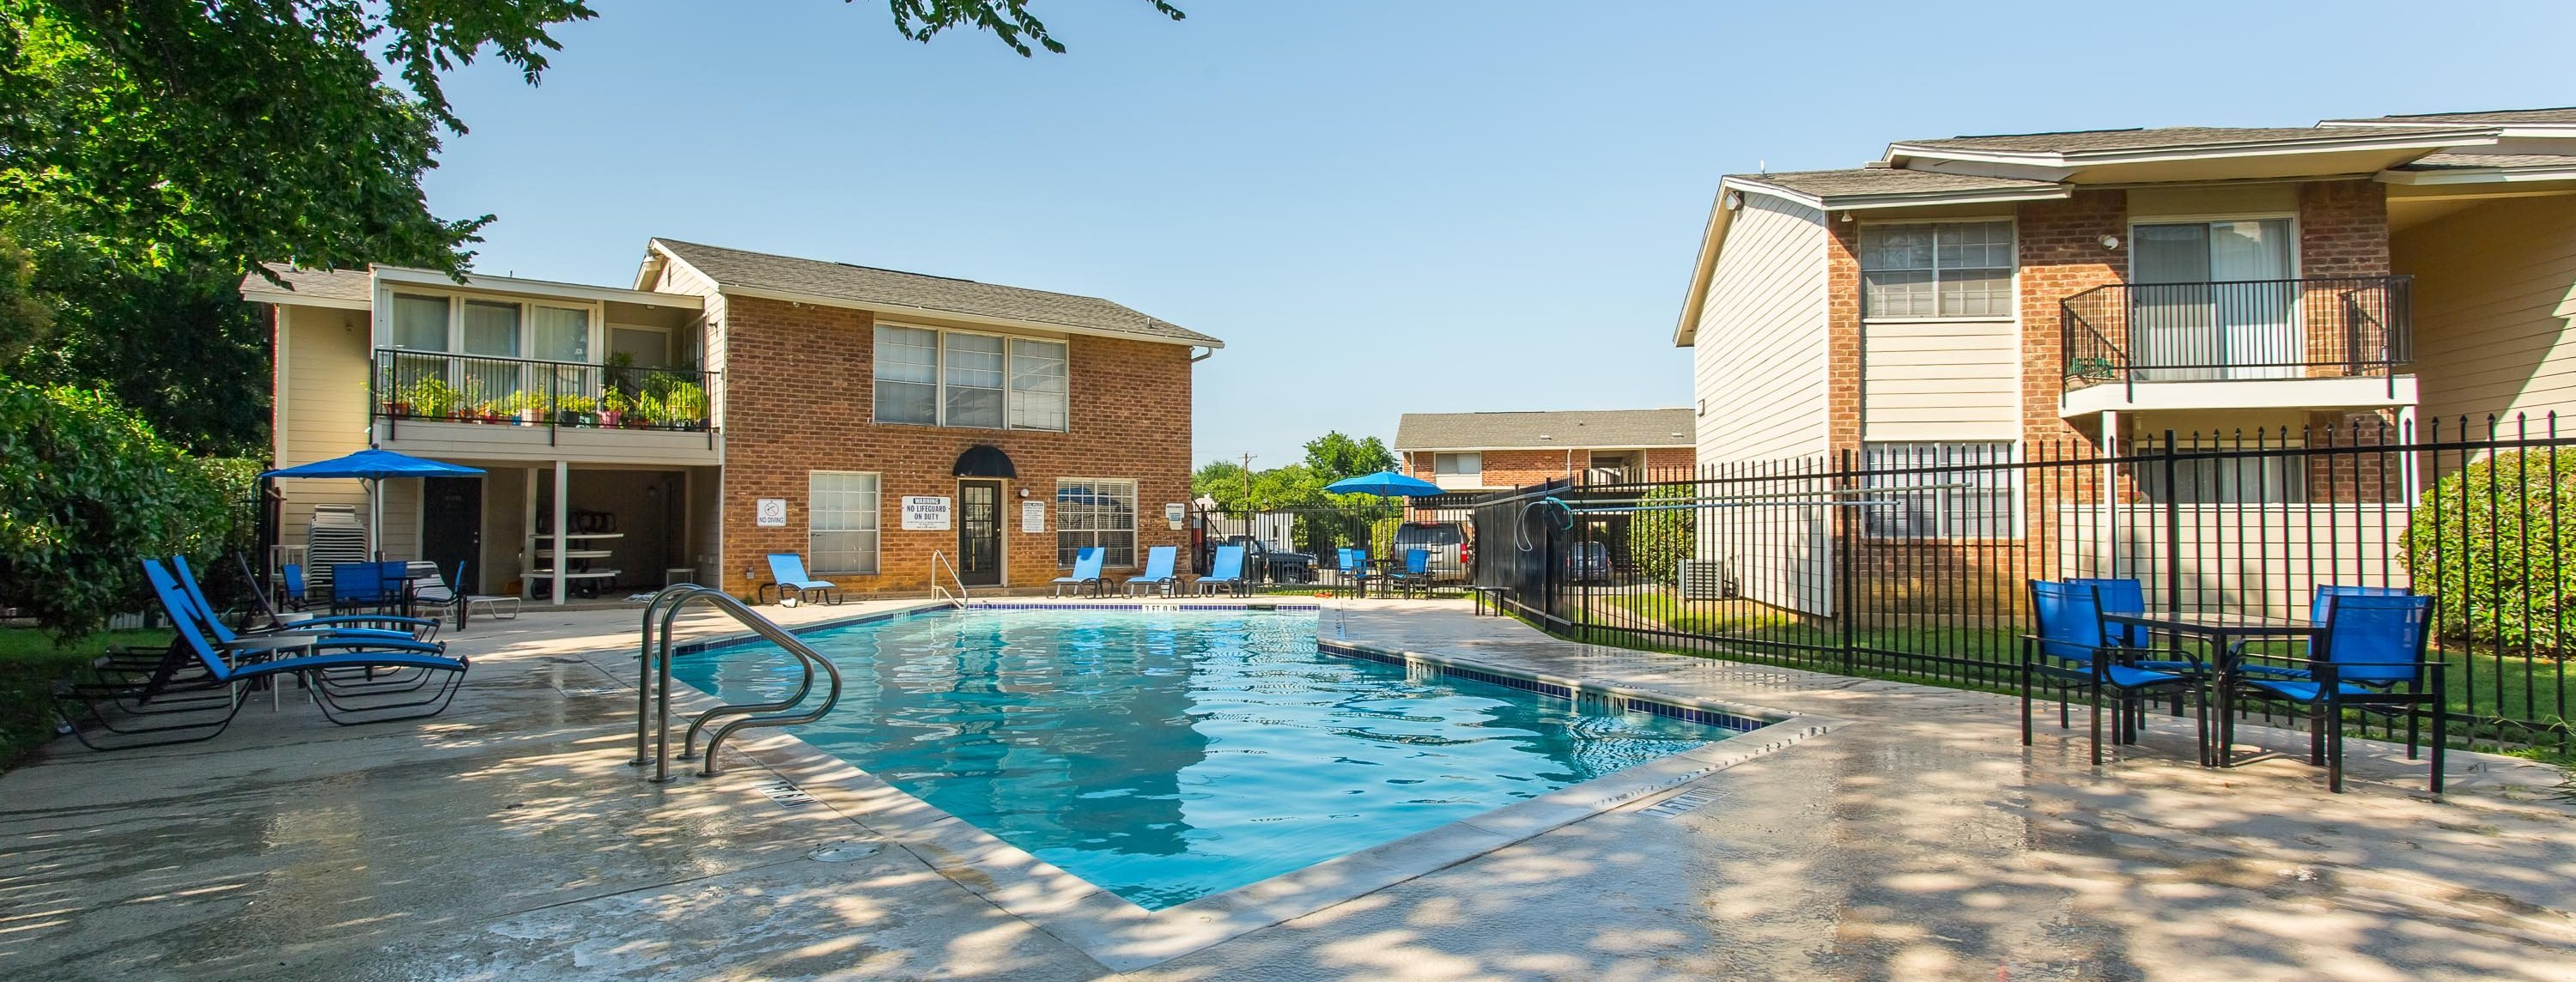 Best Apartments In Grapevine Tx